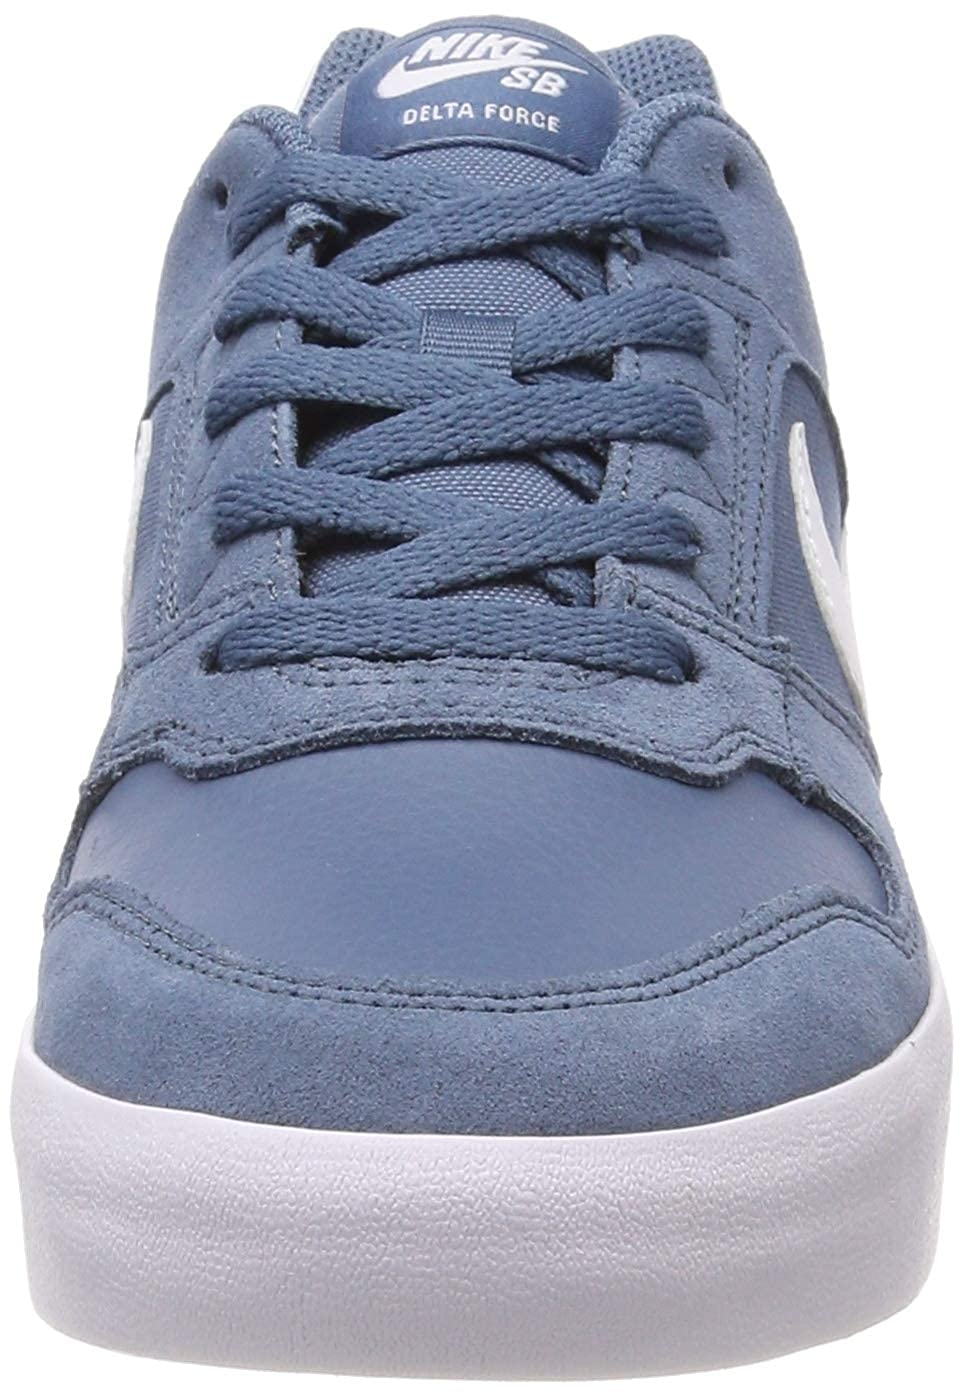 san francisco 0c402 5ed4d Nike Men s Sb Delta Force Vulc Skateboarding Shoes  Amazon.co.uk  Shoes    Bags